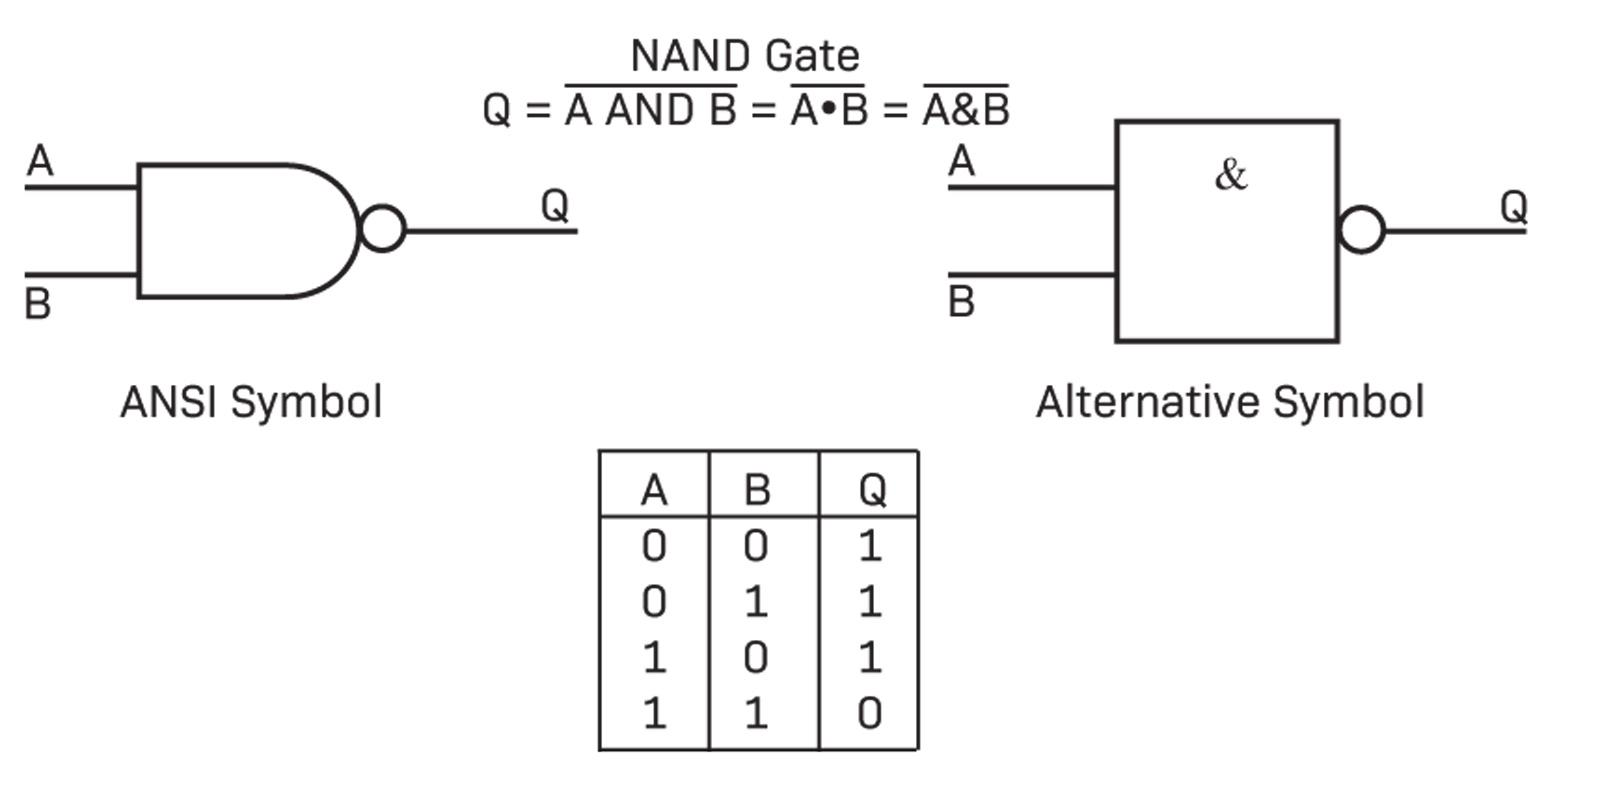 hight resolution of logic gates work better when we can add them together to form another logic circuit for example if we connect an inverter after the and gate